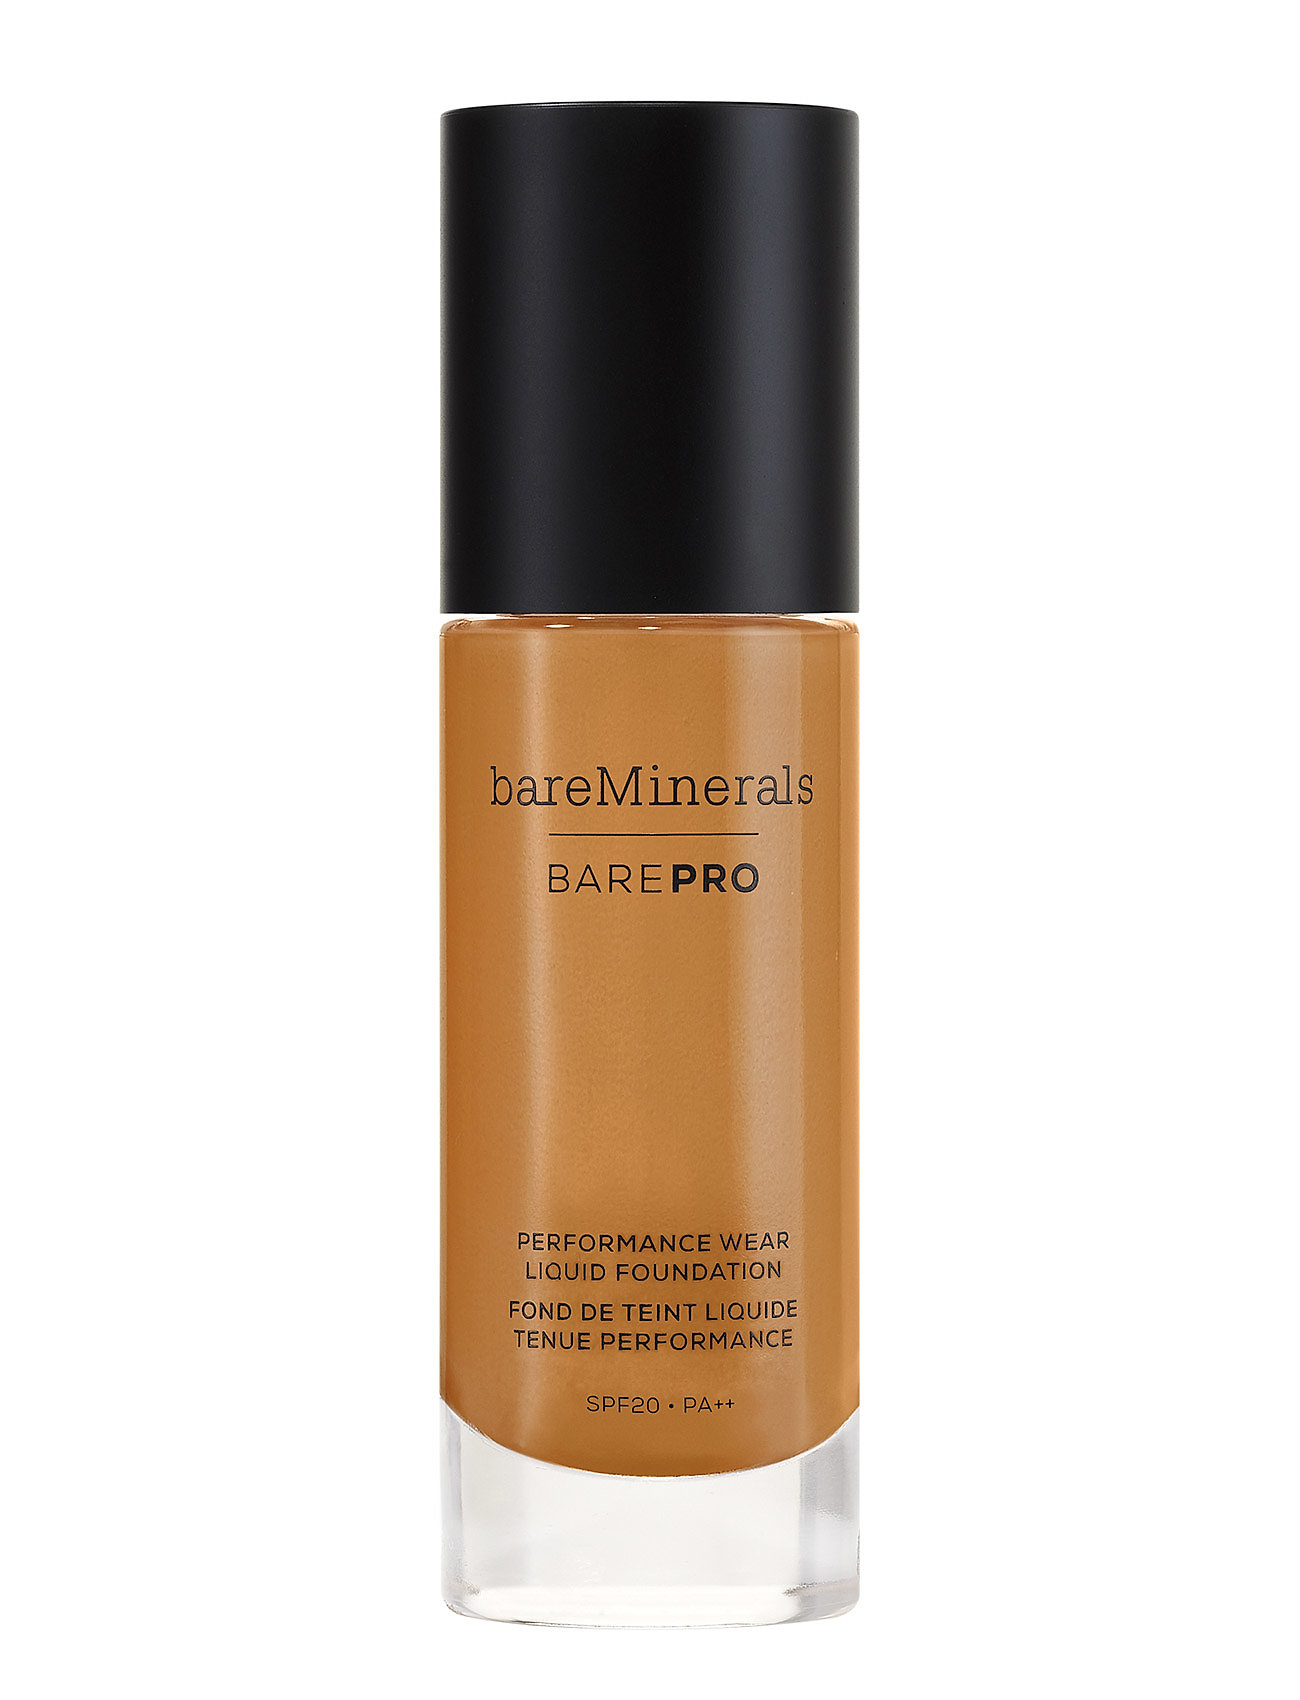 Image of Barepro Performance Wear Liquid Foundation Spf 20 Foundation Makeup BareMinerals (3067521689)